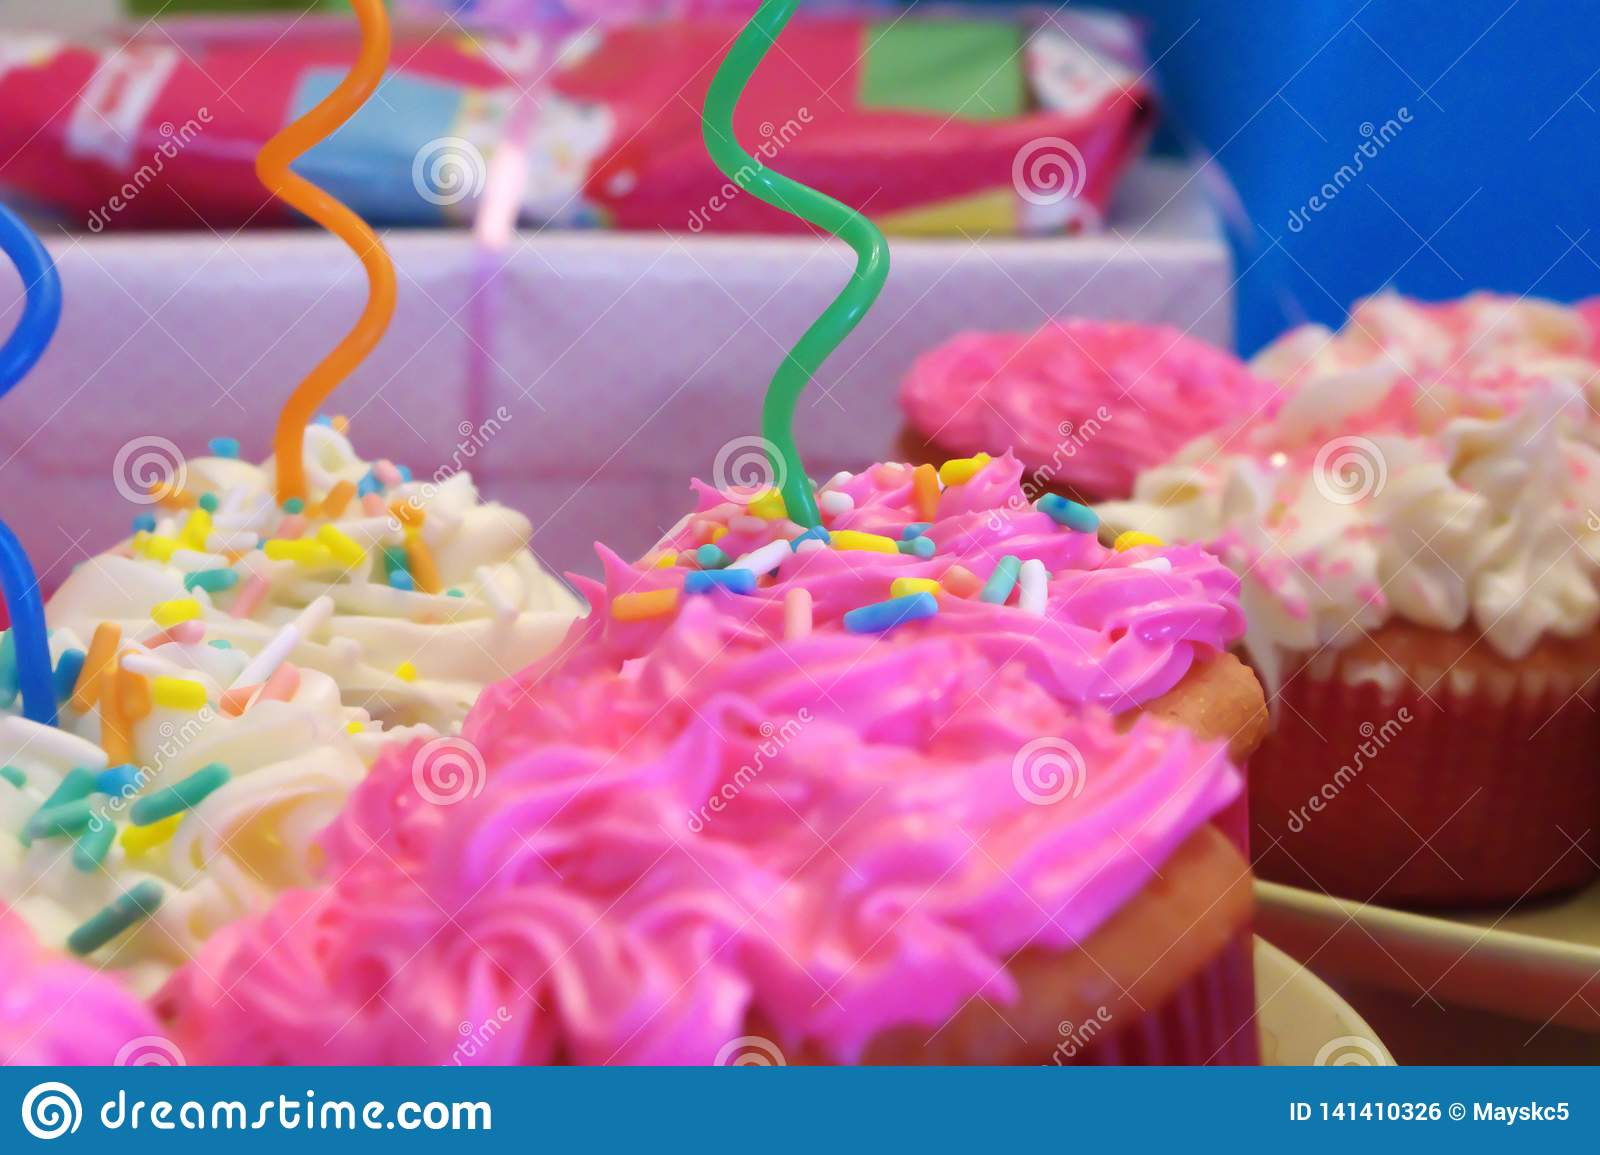 Birthday Party Pink and White Cupcakes